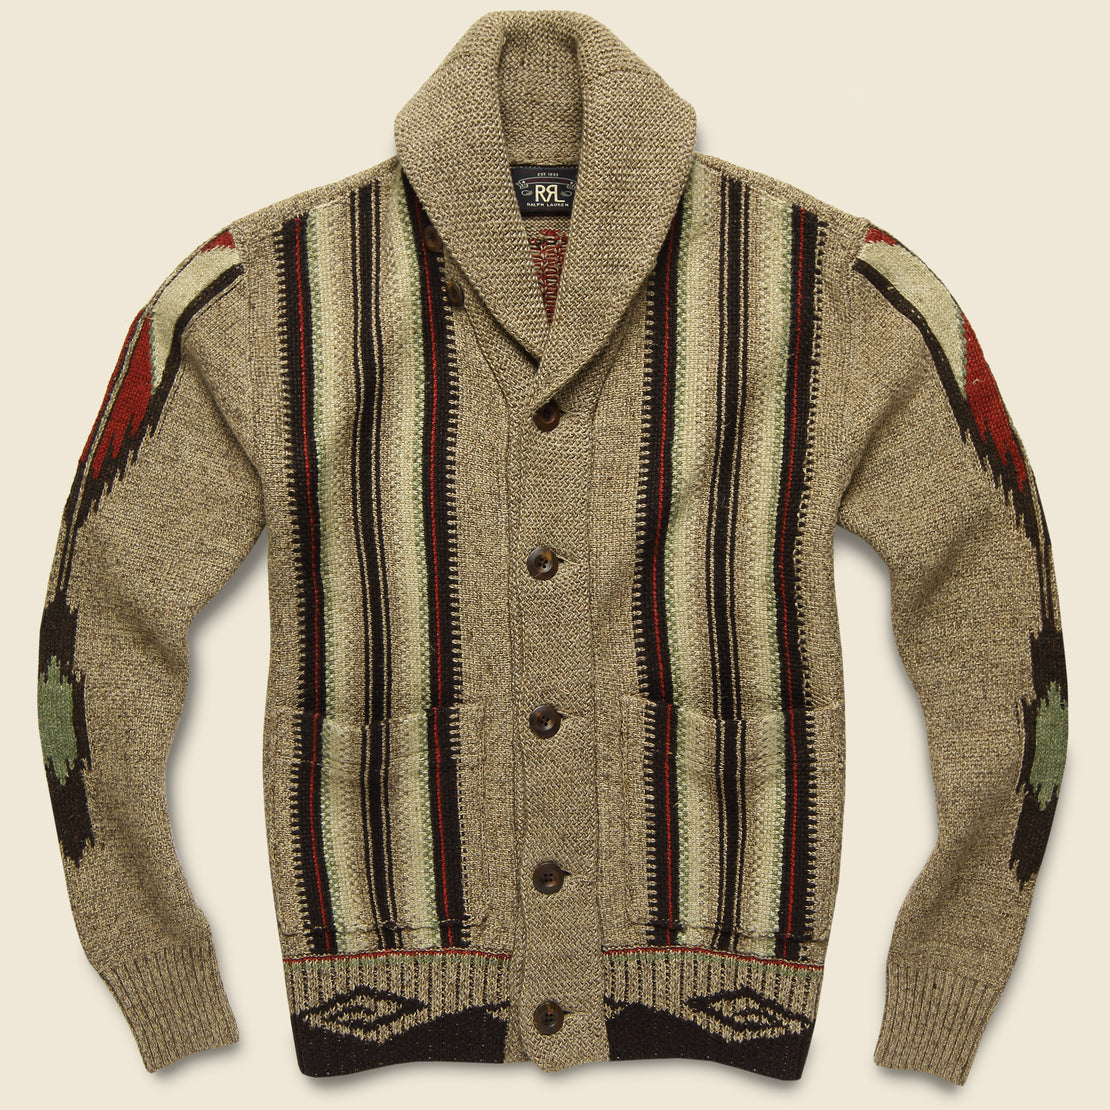 RRL Chimayo Shawl Cardigan - Earth